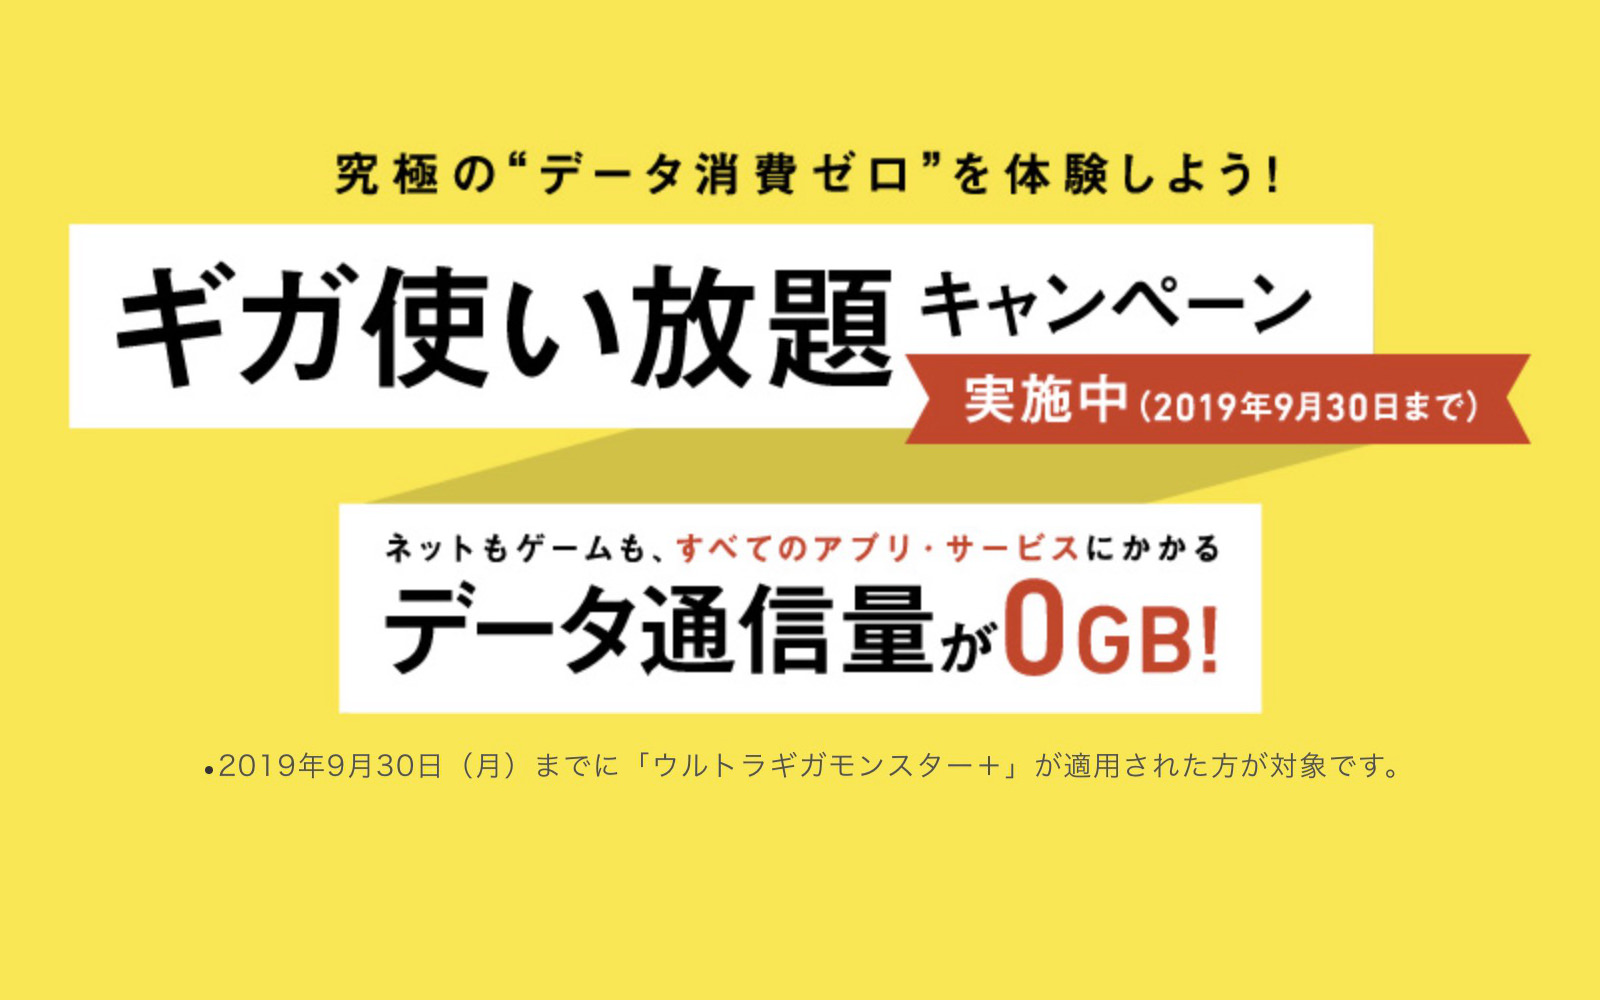 Softbank Giga Campaign Extended